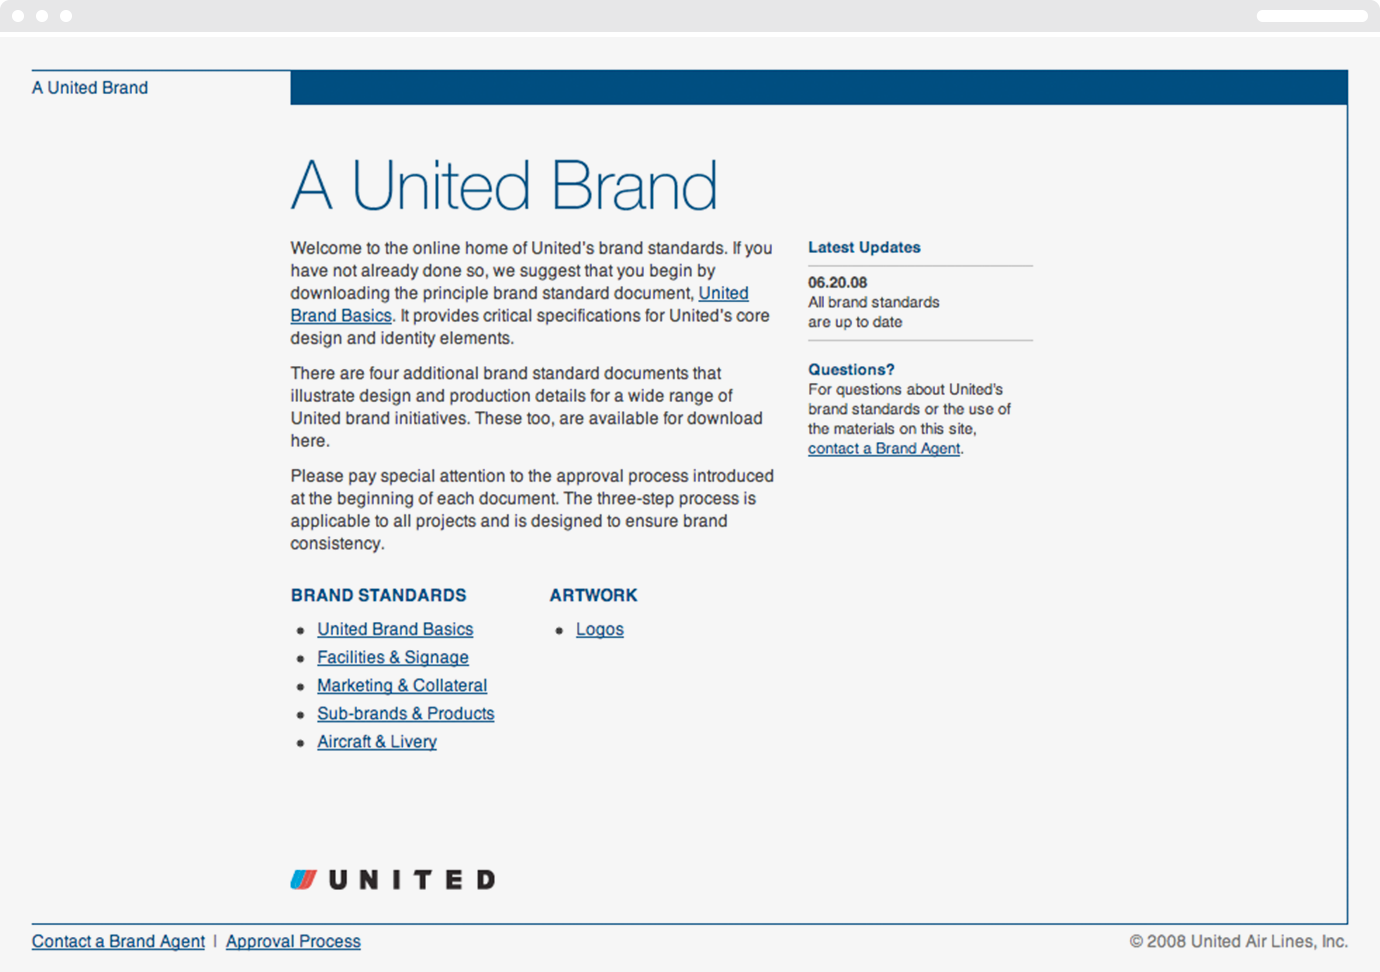 Homepage for the United Airlines brand standards web portal.